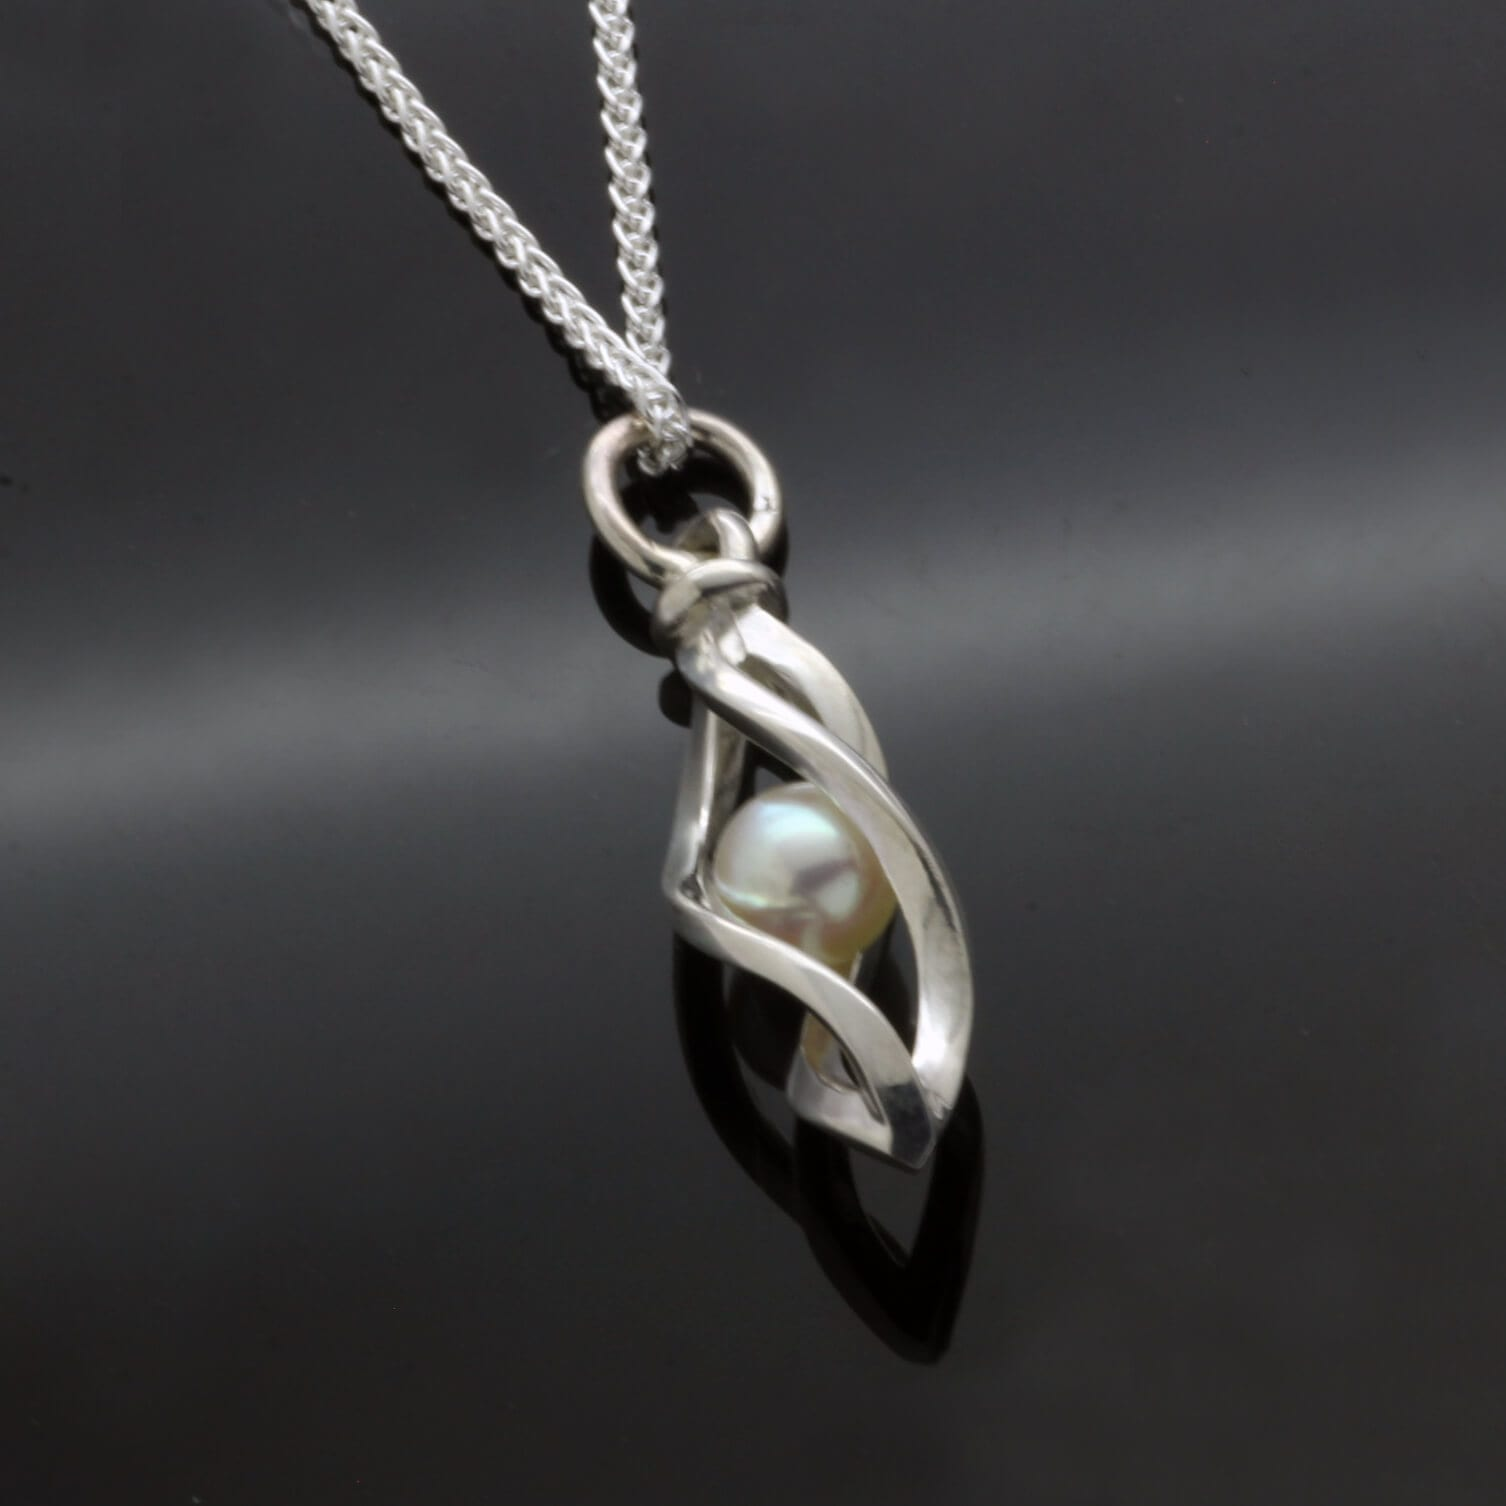 Unique contemporary sculptural jewellery featuring handmade Pearl Silver necklace